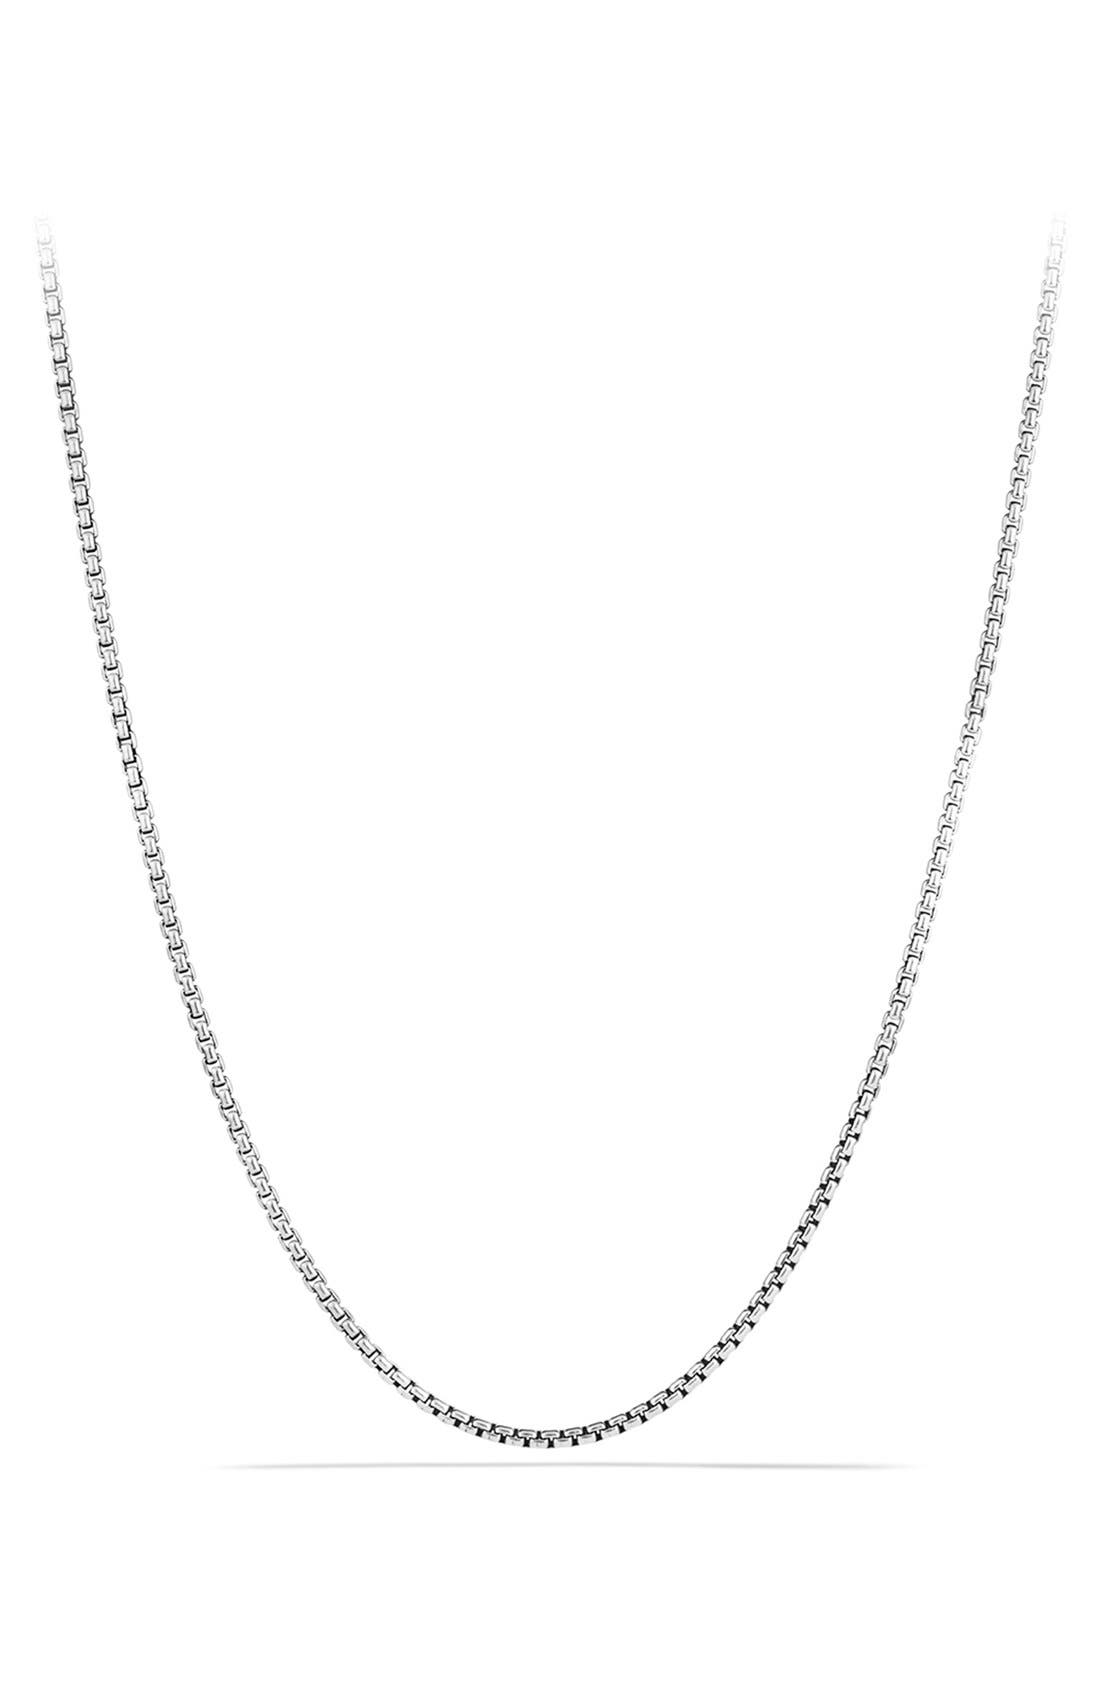 Alternate Image 1 Selected - David Yurman 'Chain' Small Box Chain Necklace